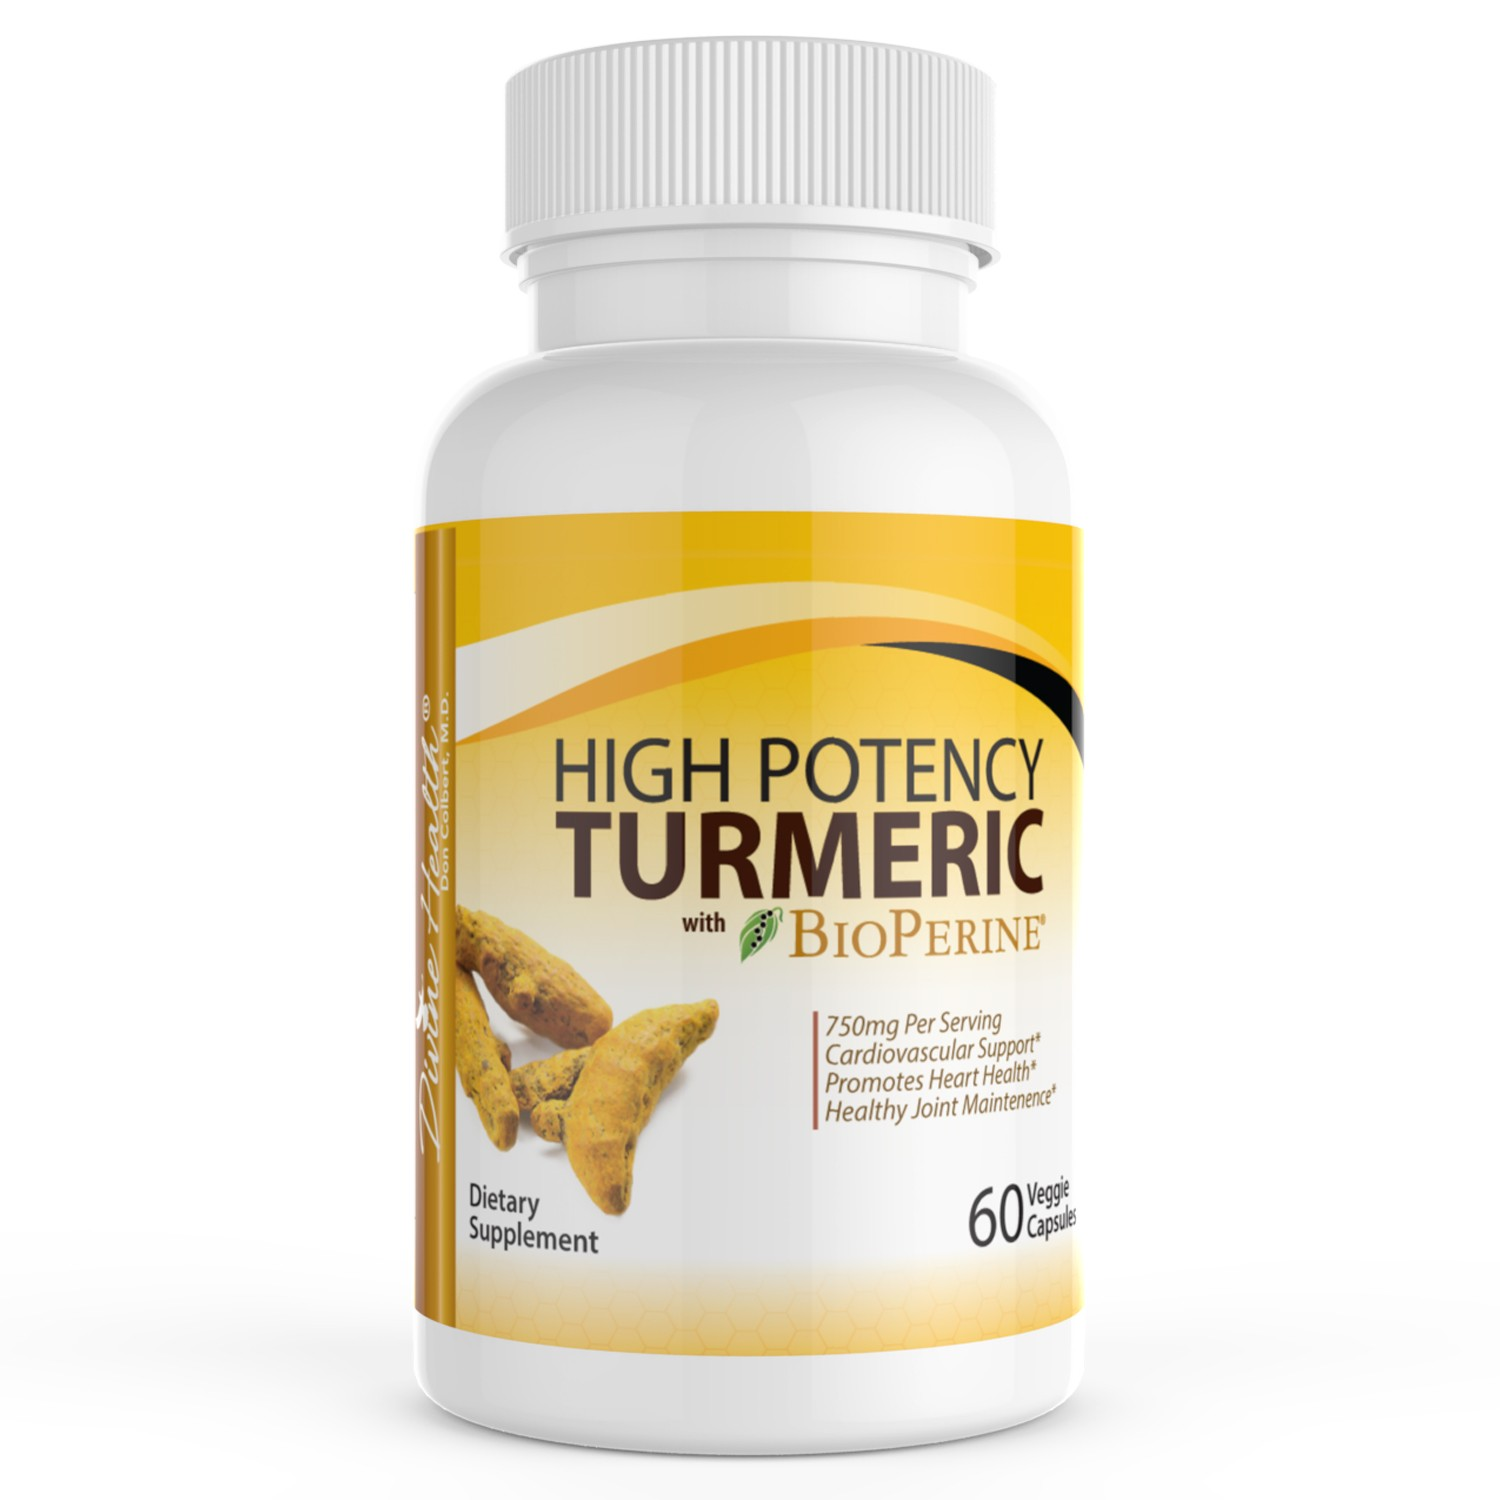 High Potency Turmeric With Bioperine